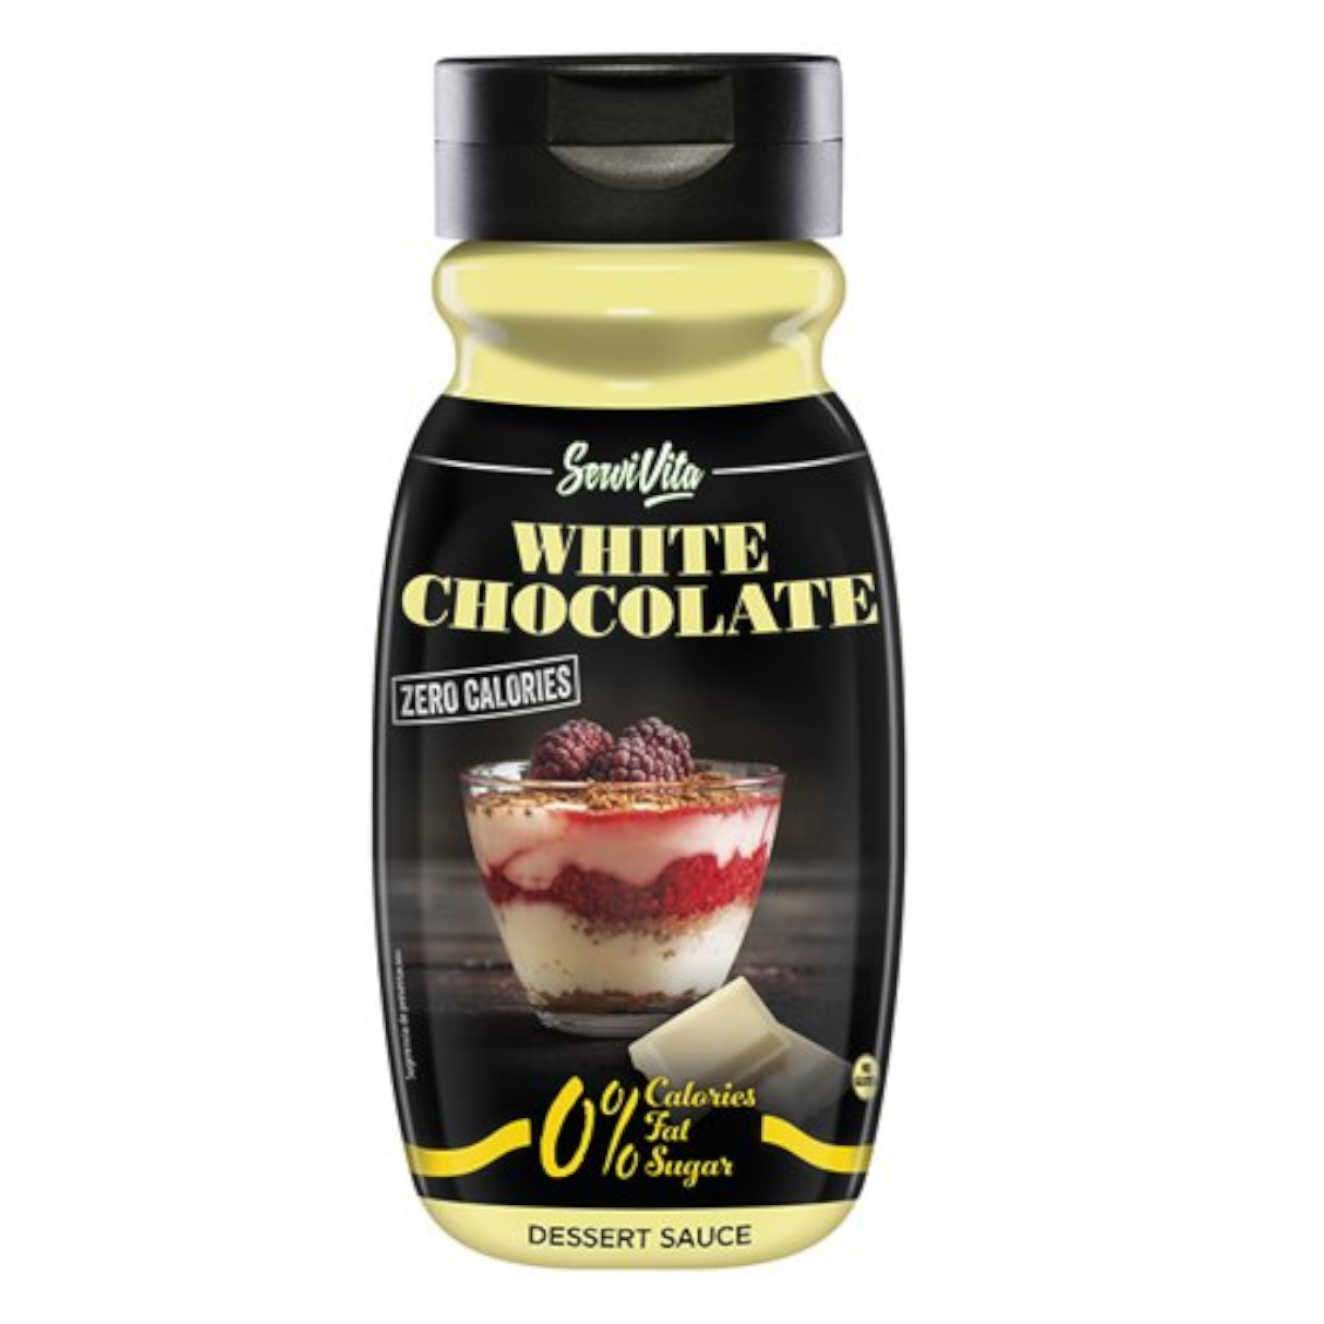 SERVIVITA SIROPE DE CHOCOLATE BLANCO CERO CALORIAS - 320ml